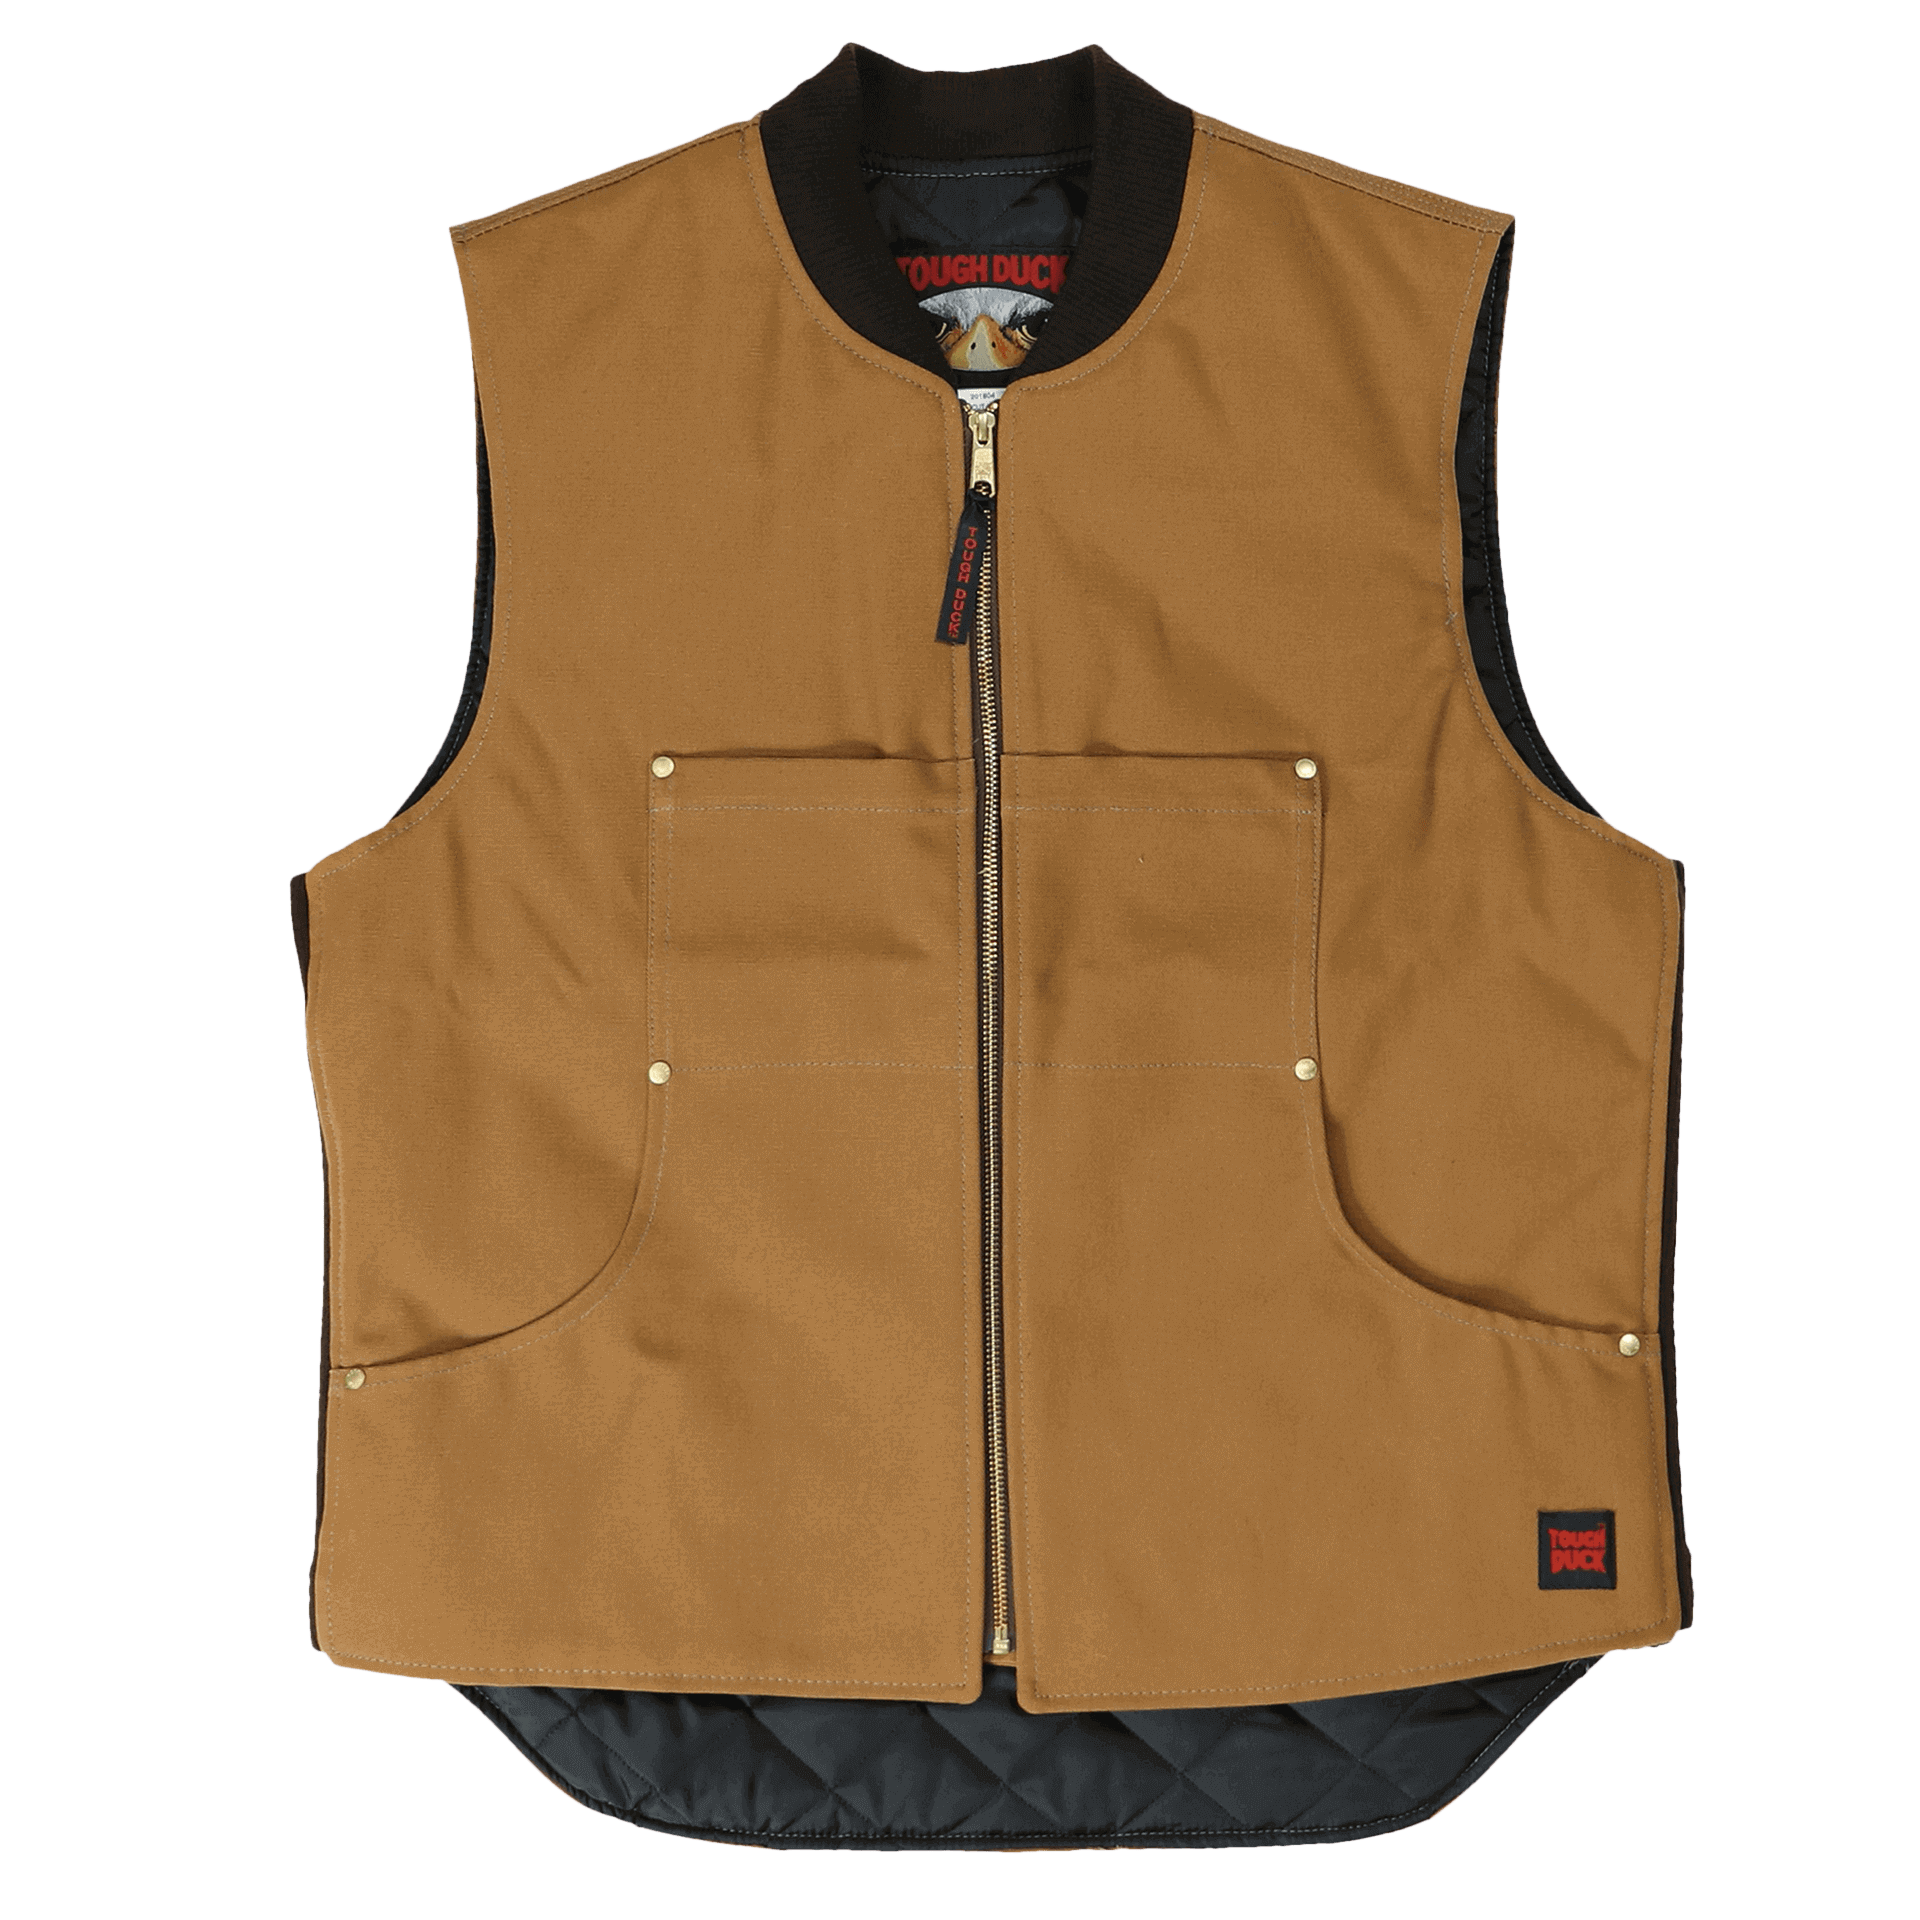 Tough Duck Quilted Lined Vest - 1937